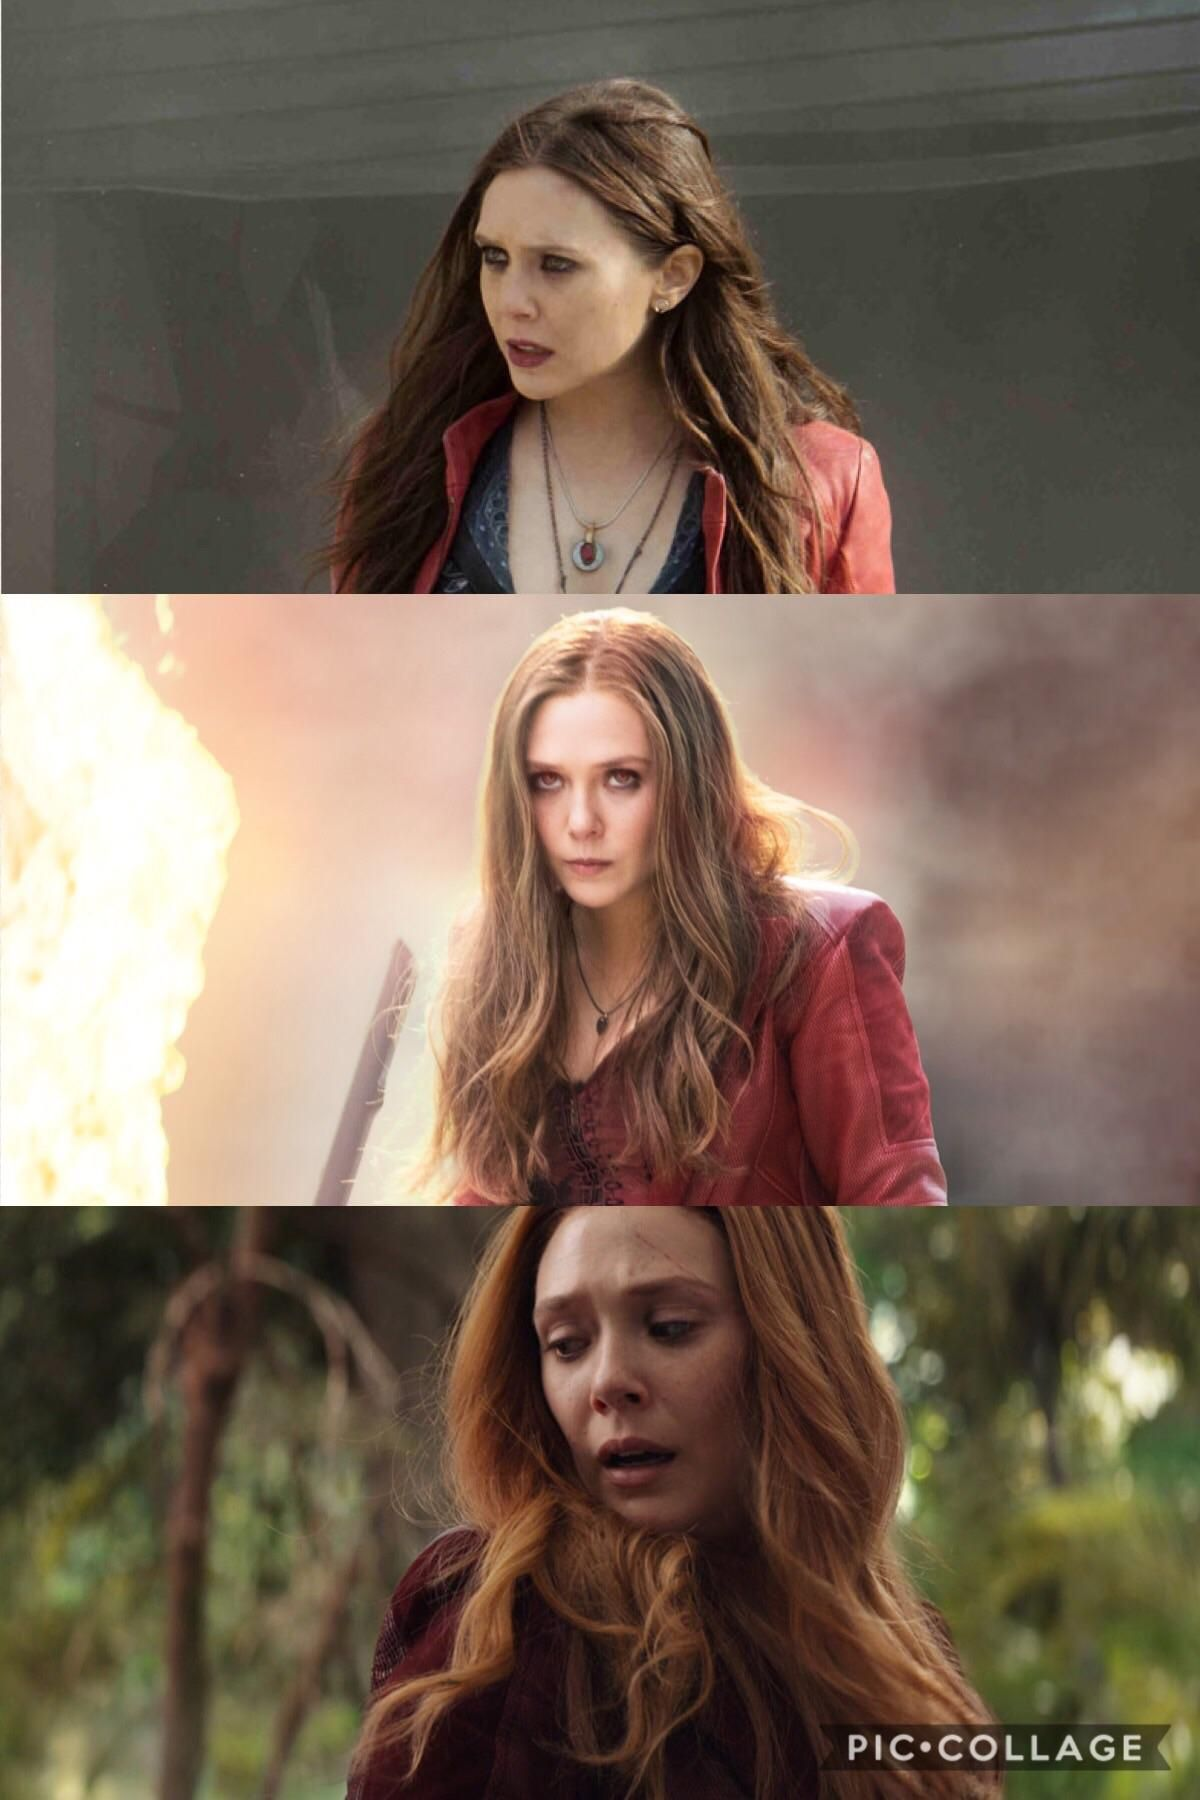 In The Mcu Scarlet Witchs Hair Changes From Dark To Light Referencing Her Characters Arc From Scarlet Witch Marvel Scarlet Witch Elizabeth Olsen Scarlet Witch